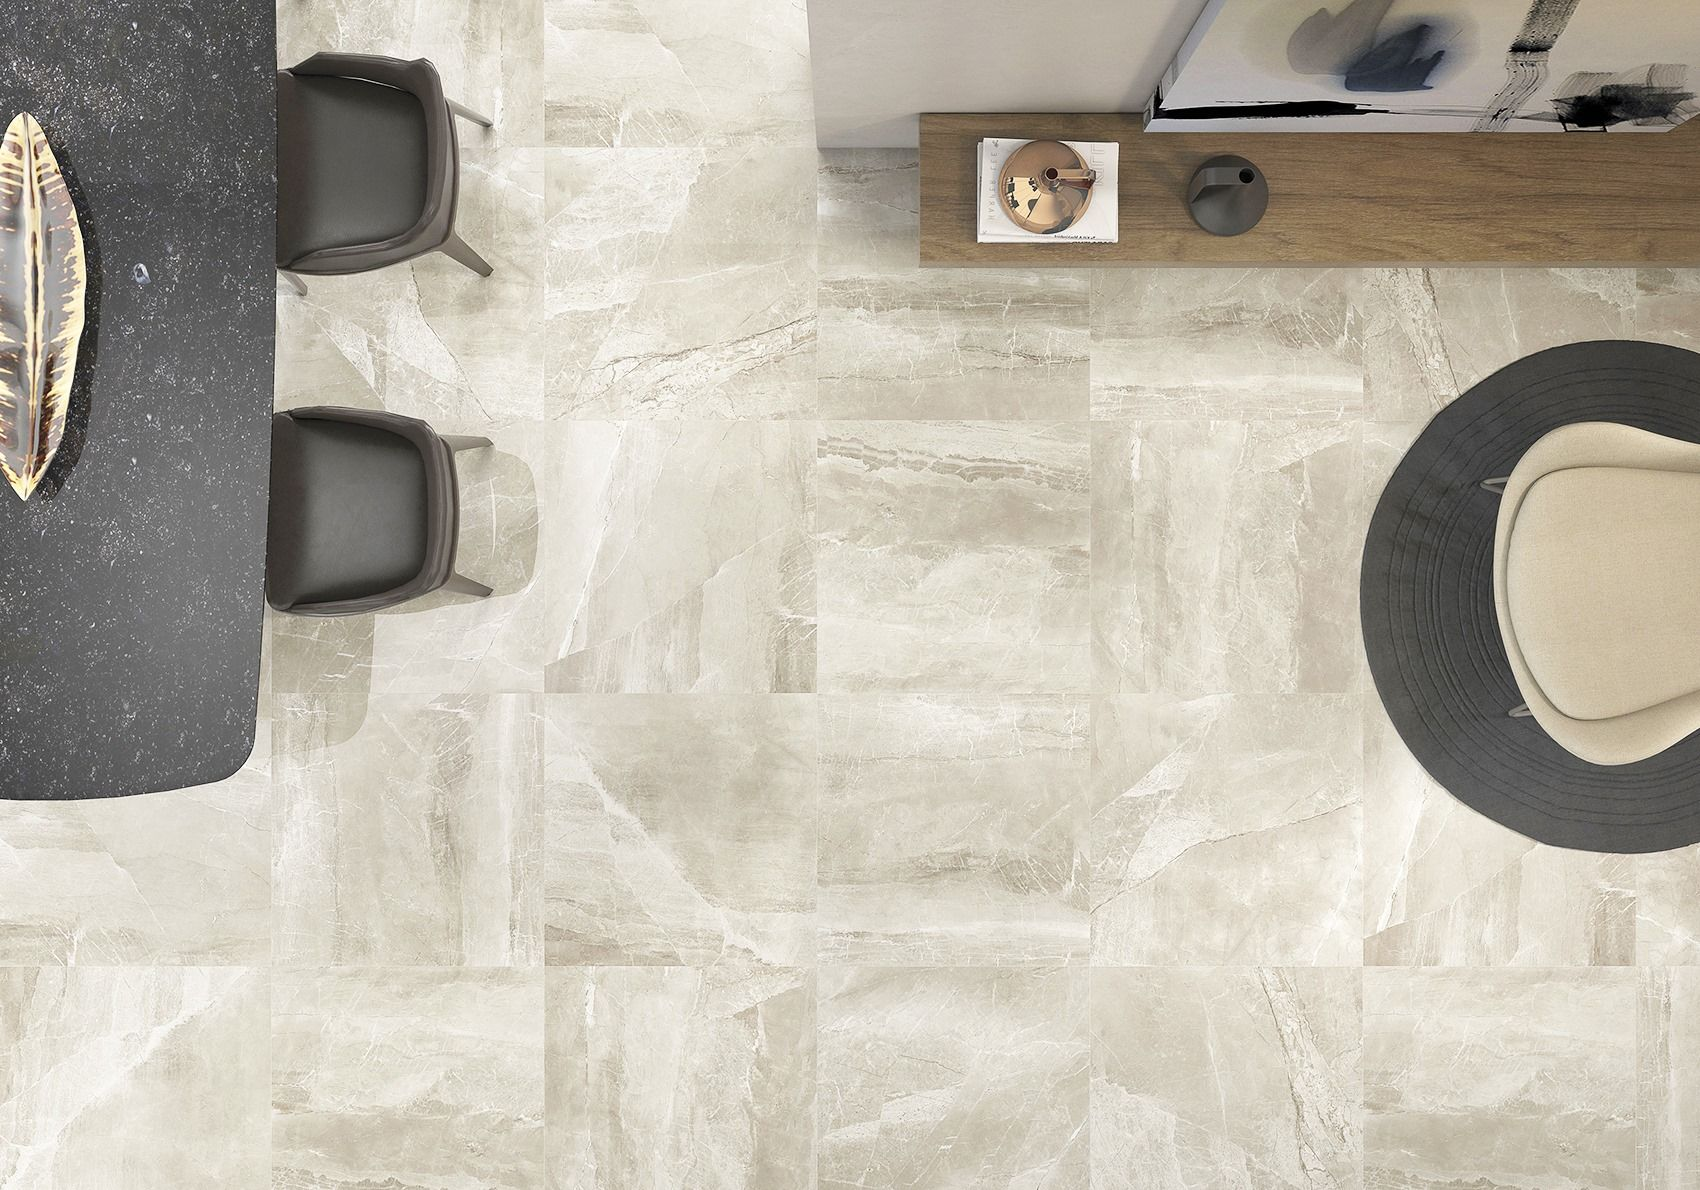 Kashmir Hueso Is One Of The Most Por Spanish Tiles At Tfo Love Sophisticated Look Marble In A Large Format Porcelain Tile